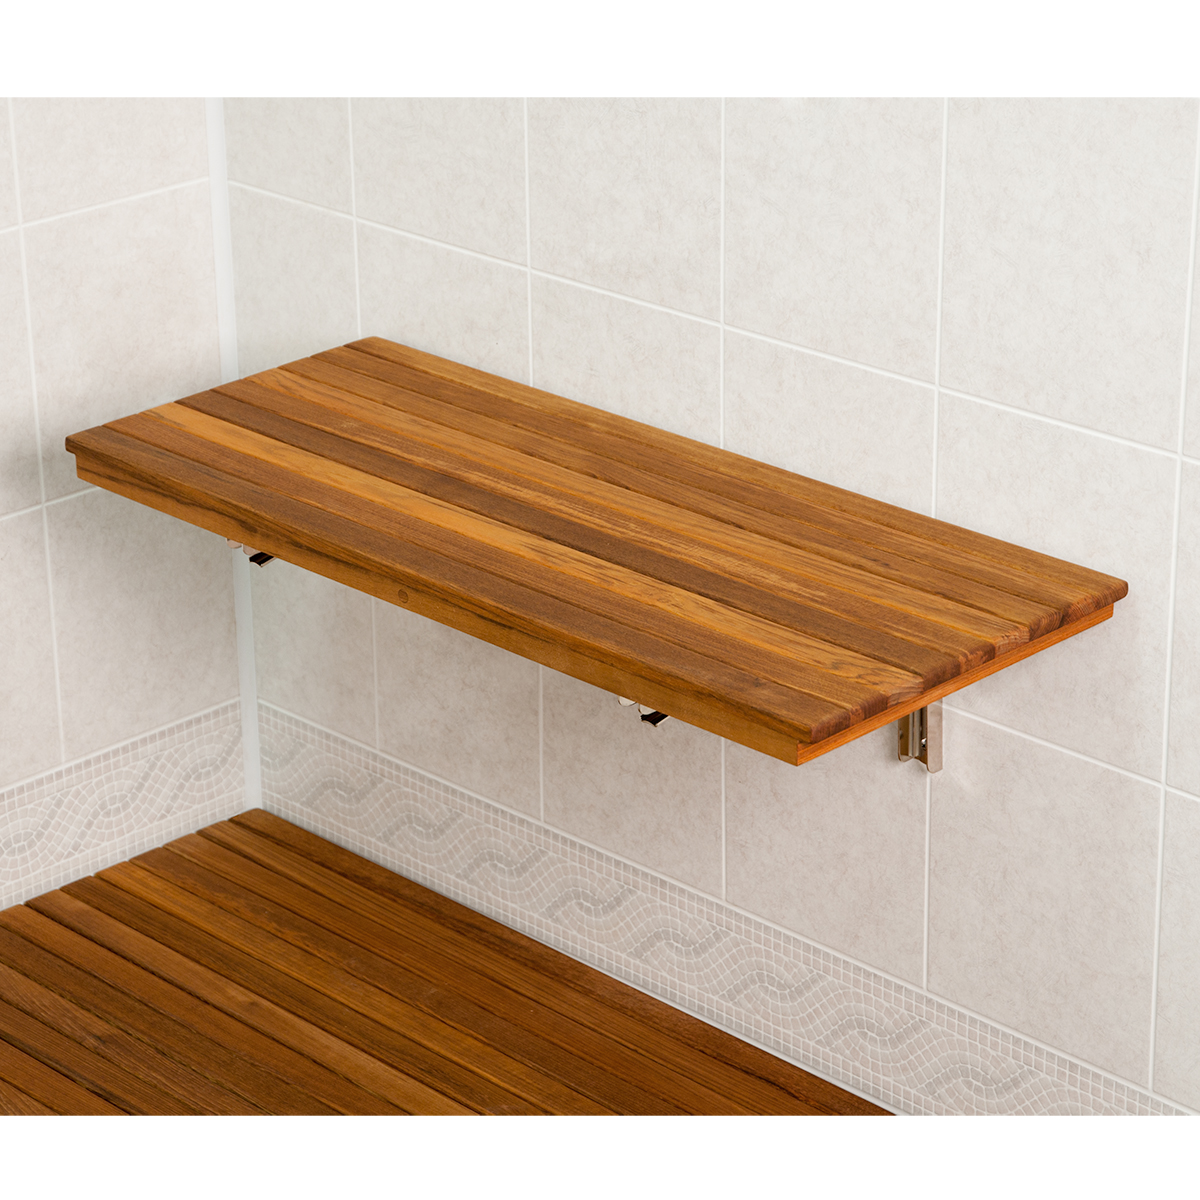 Discount Teak Wood Shower Benches - On Sale Now!